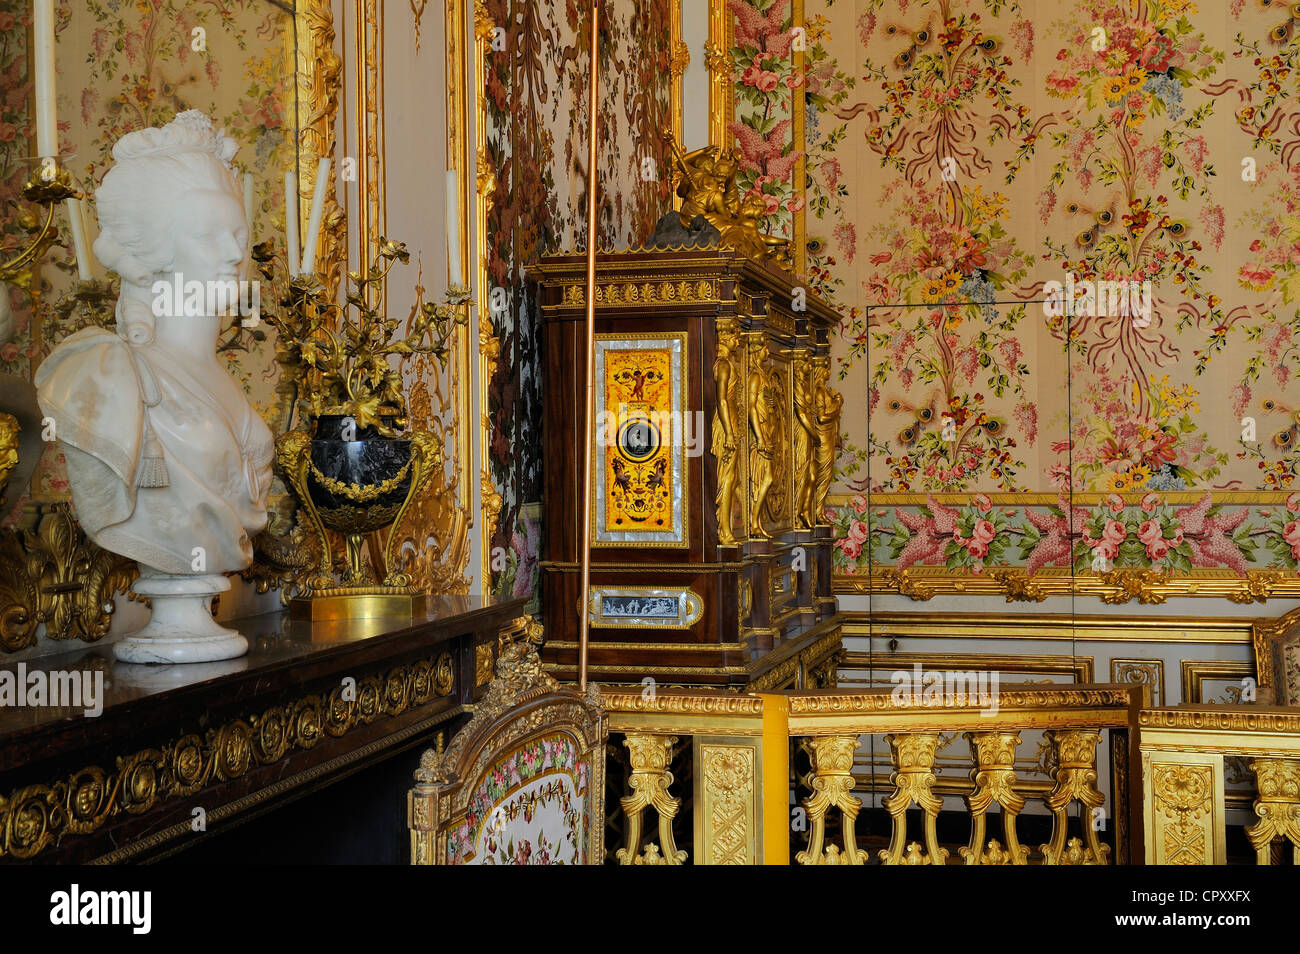 France Yvelines Chateau de Versailles listed as World Heritage by UNESCO Les Grands Appartements State Apartments - Stock Image